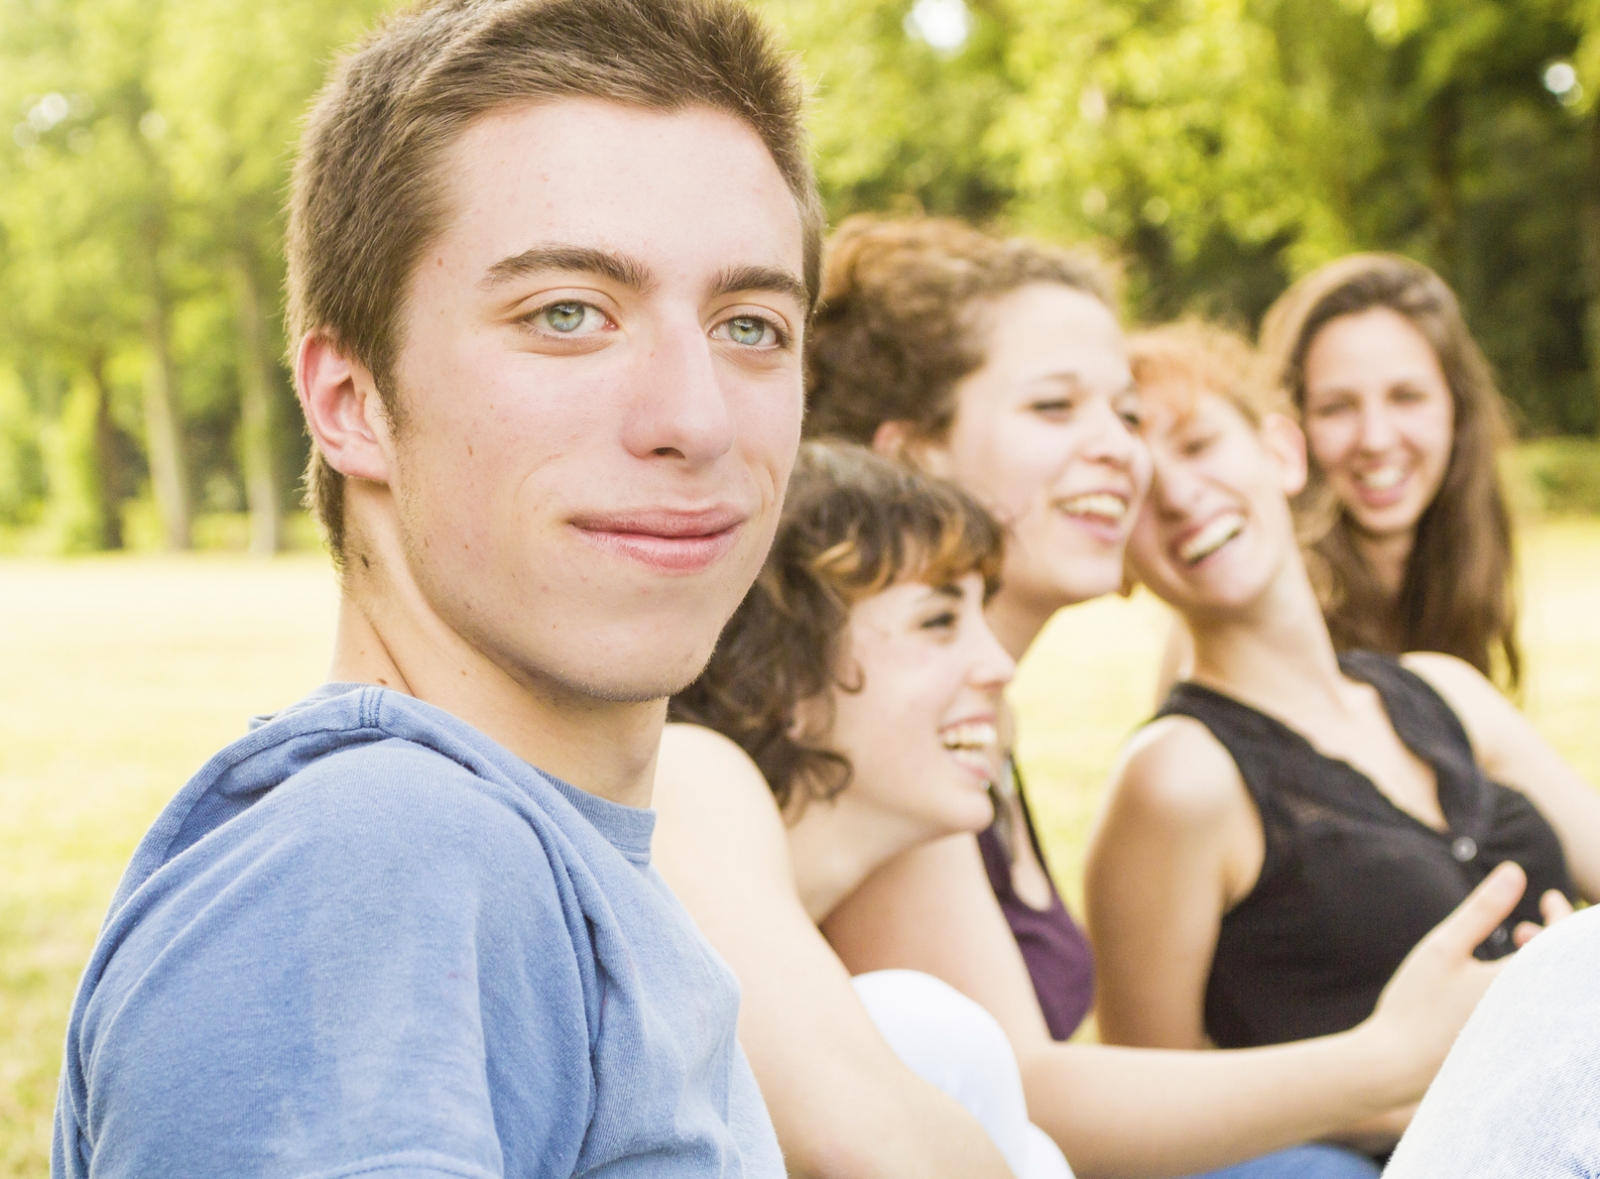 Adolescence could now last until the age of 24, researchers suggest